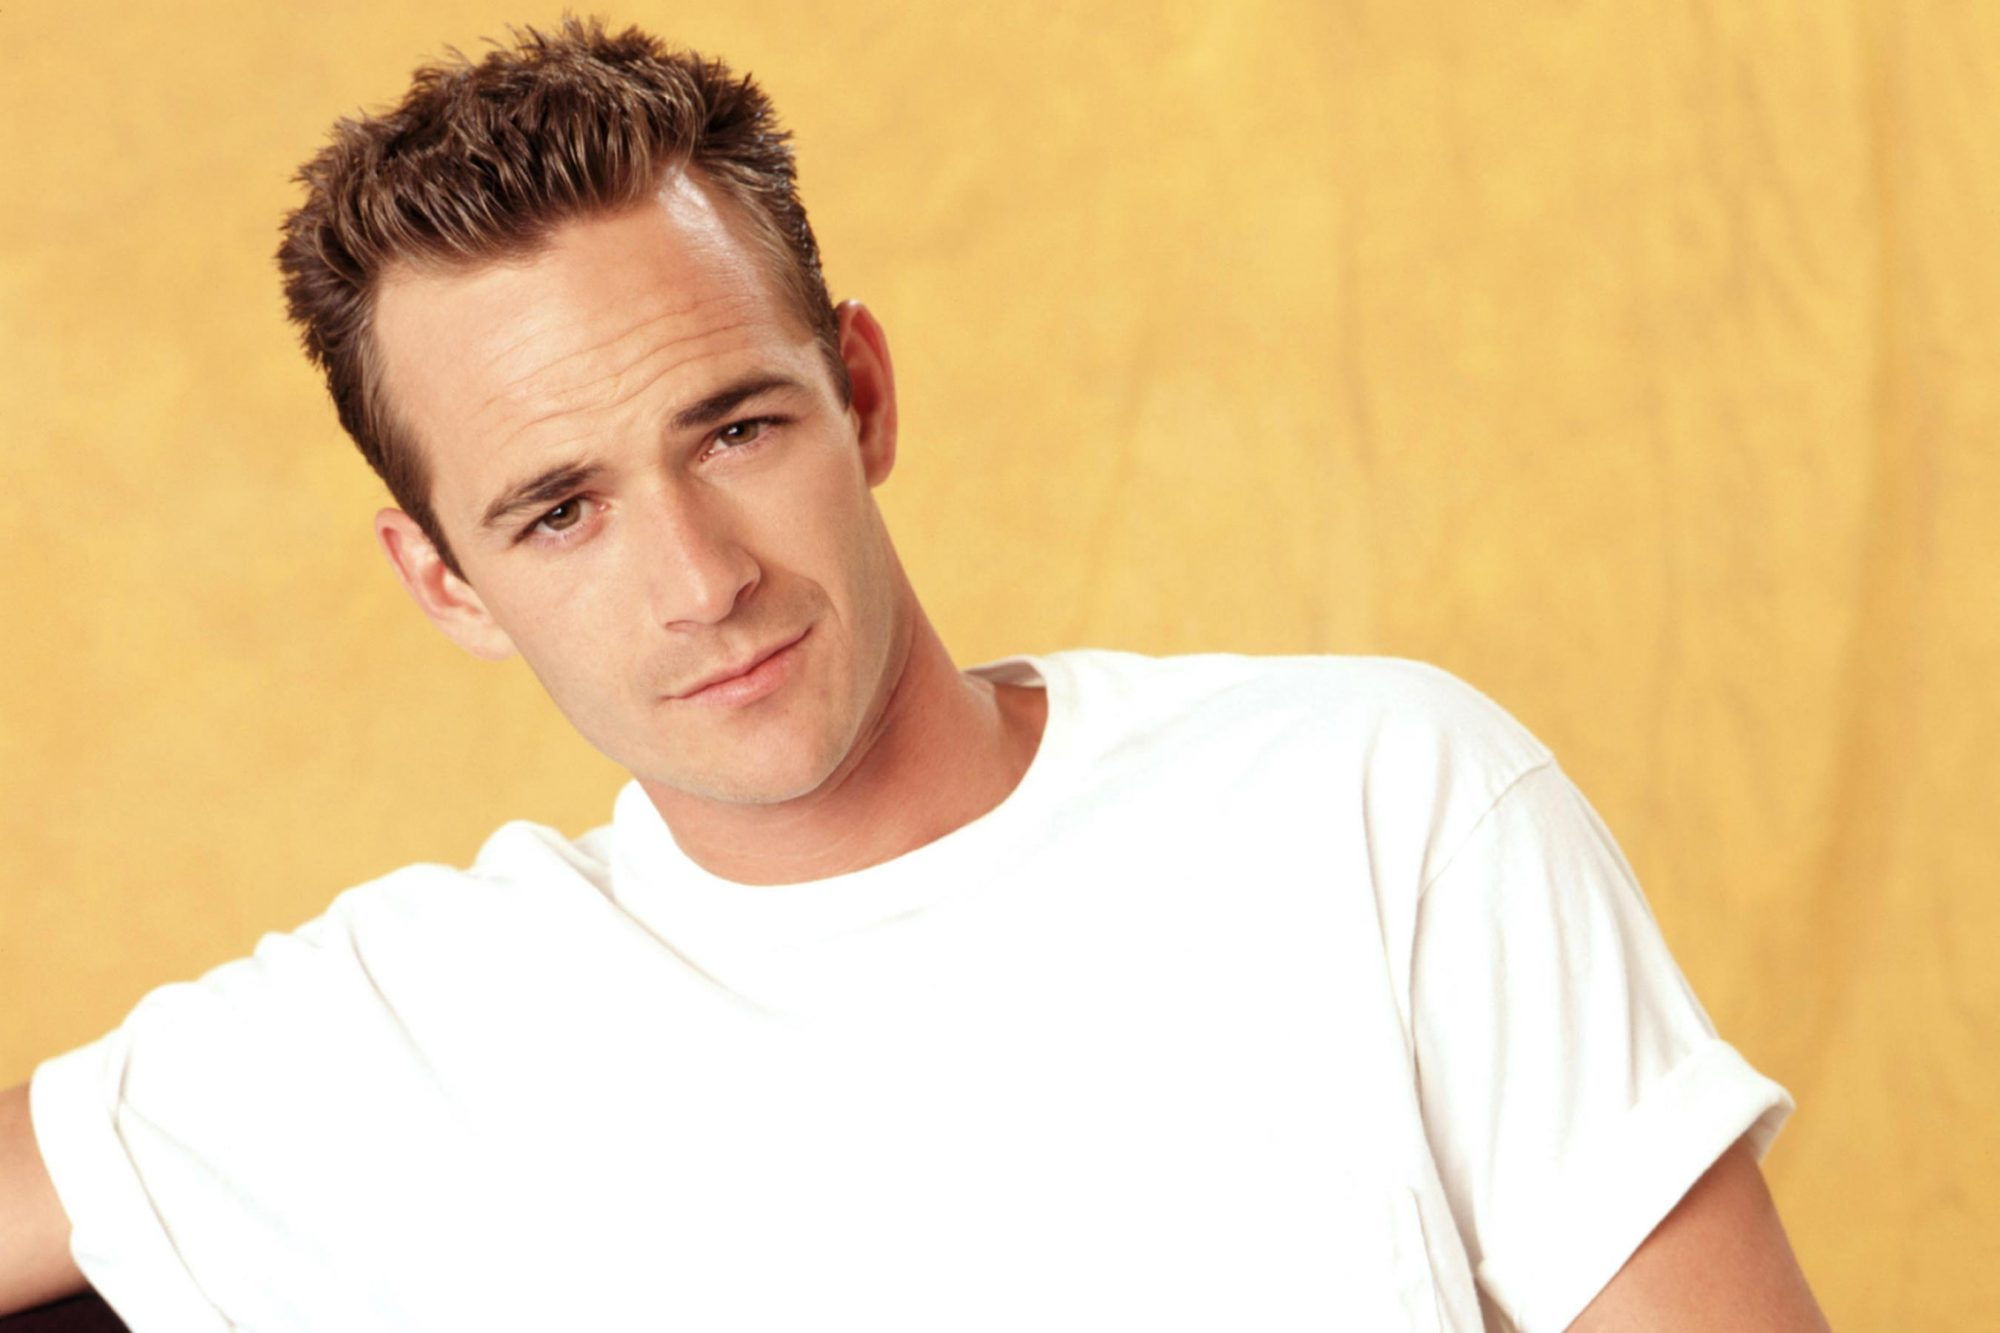 BEVERLY HILLS 90210, Luke Perry, (Season 6, 1995), 1990-2000. © Aaron Spelling Prod.  / Courtesy: Ev